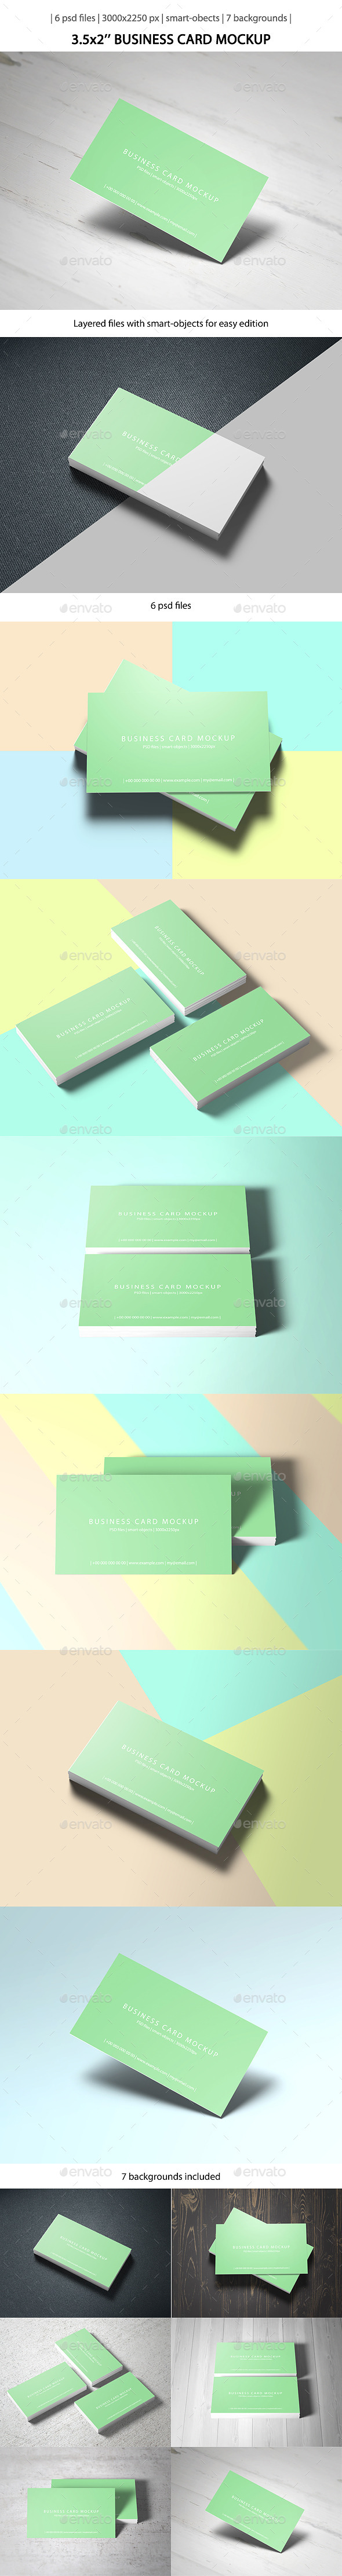 3.5x2 Business Card Mockup - Business Cards Print